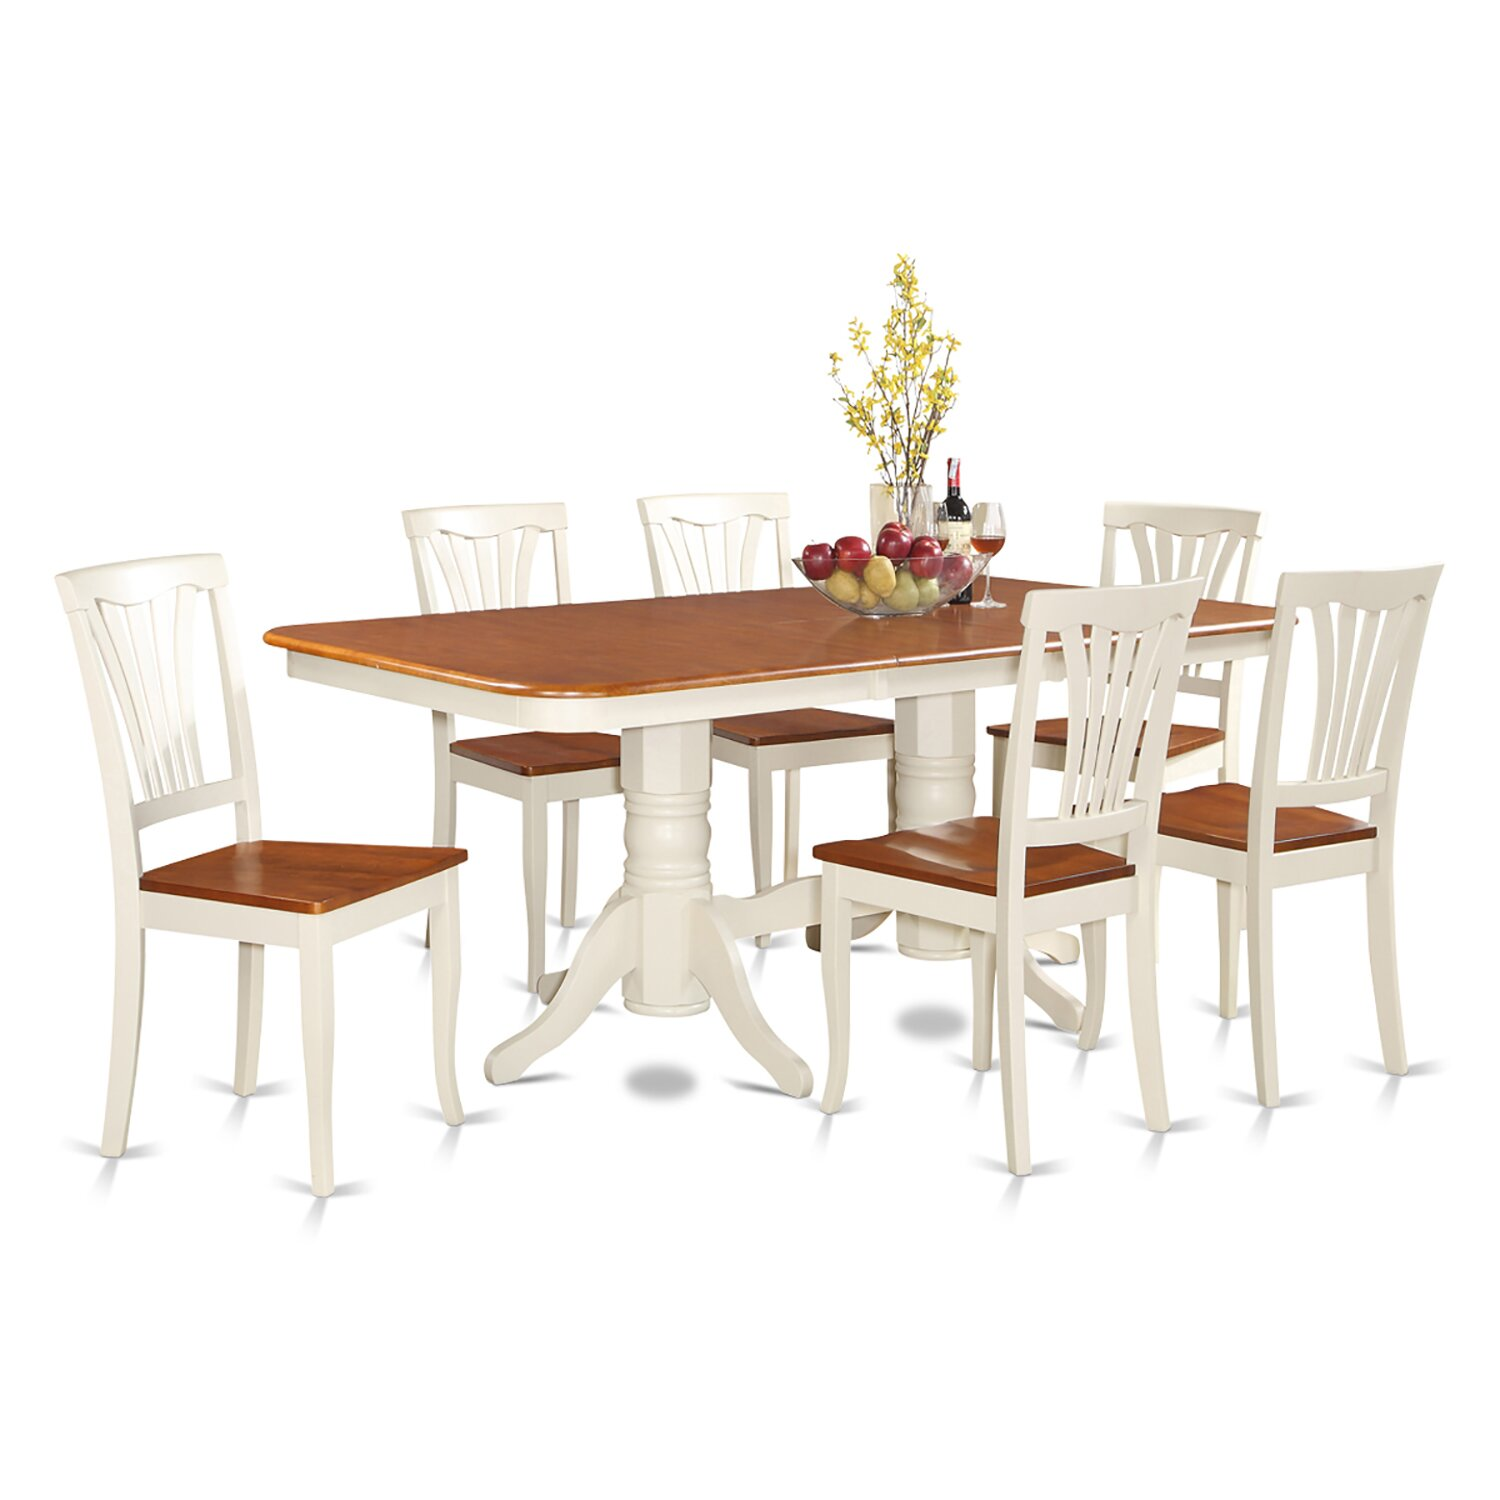 Wooden importers napoleon 7 piece dining set reviews for Furniture 7 reviews